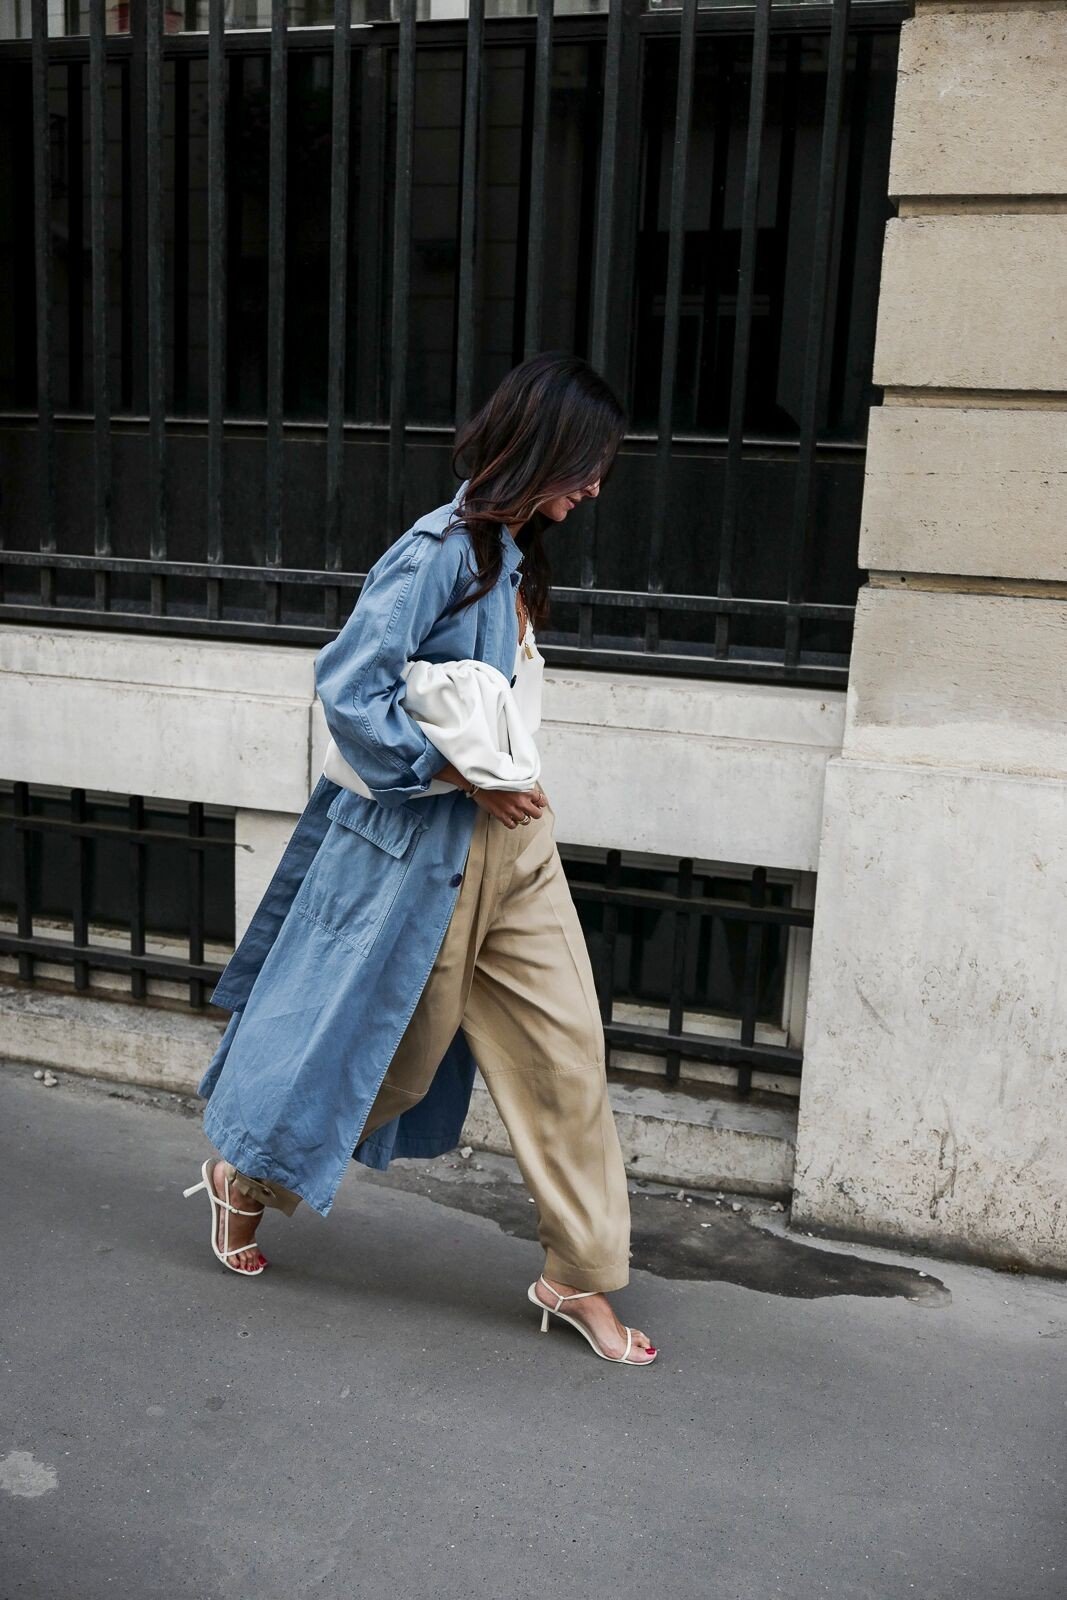 Spring Outfit Idea — Denim Trench Coat, White Cami Top, Khaki Panta, Bottega Veneta Pouch Bag, and The Row Kitten Heel Sandals